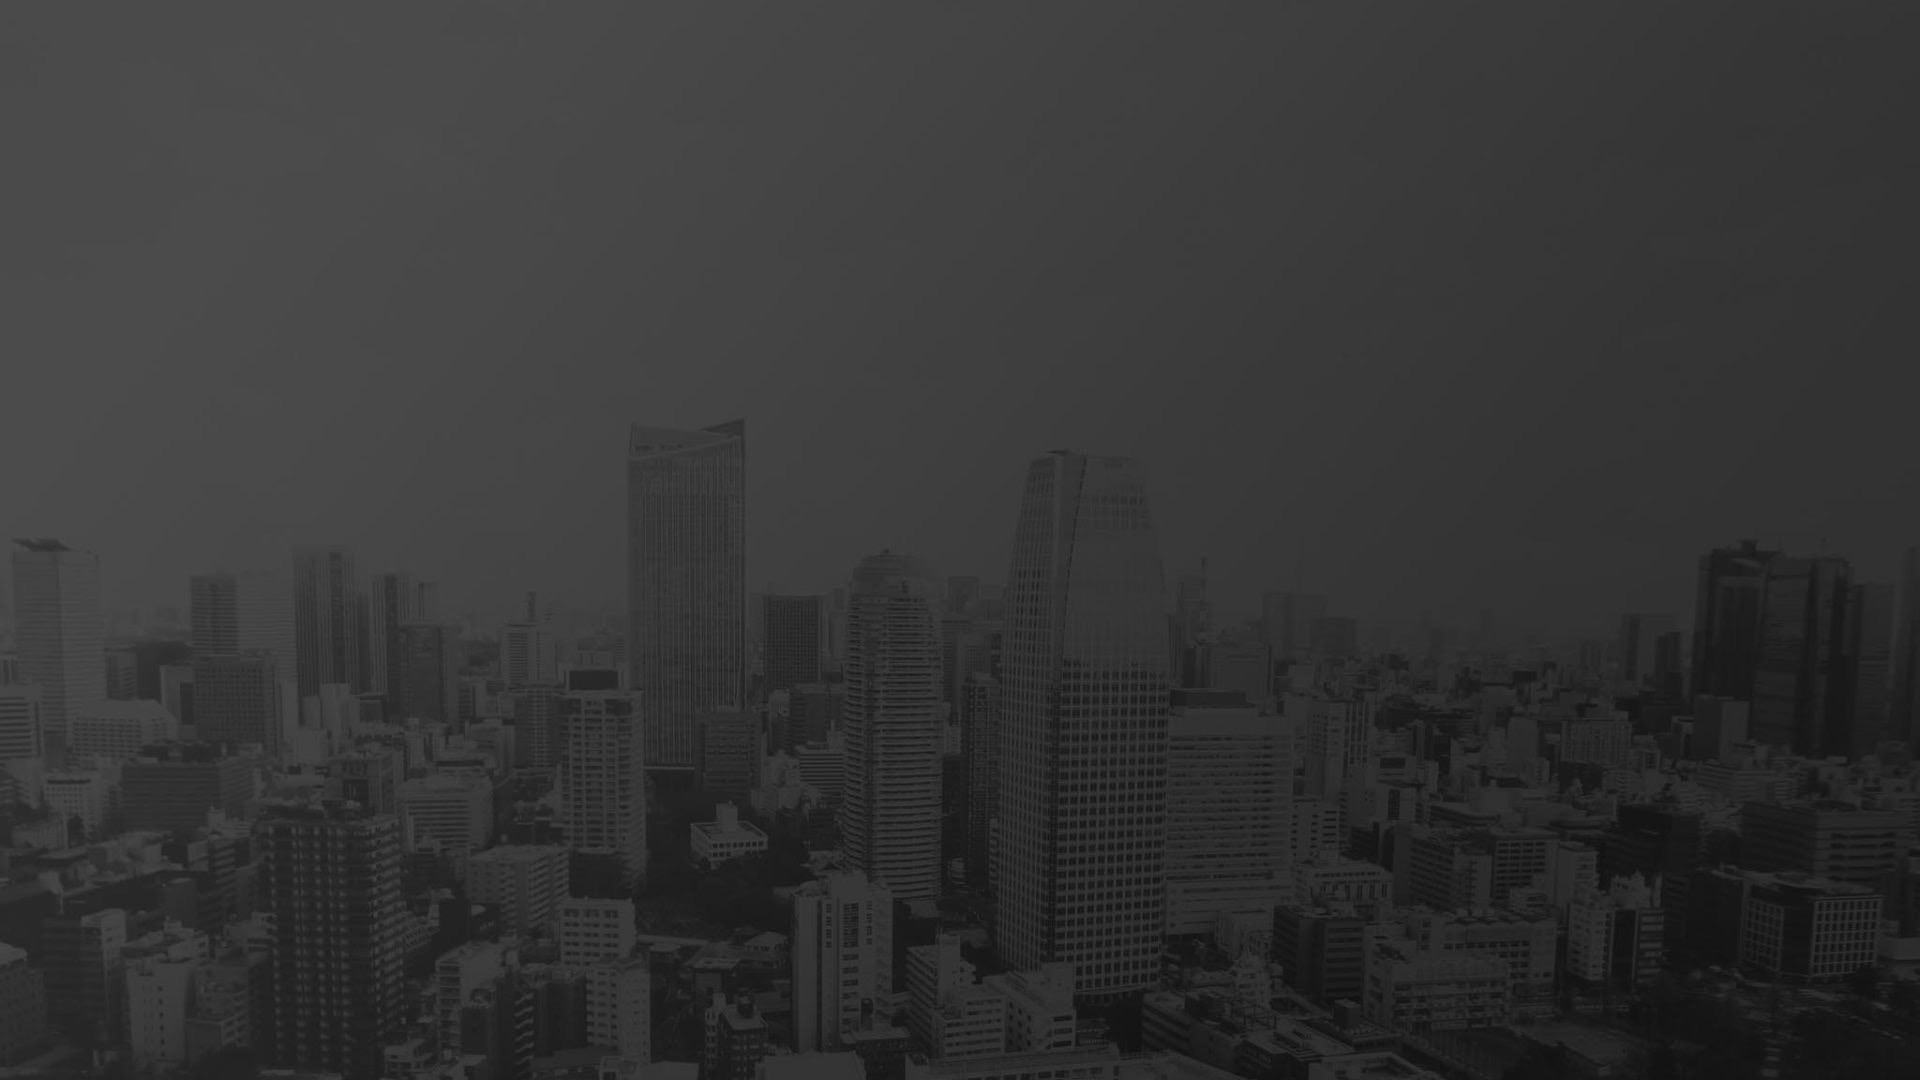 skyline_dark_grey